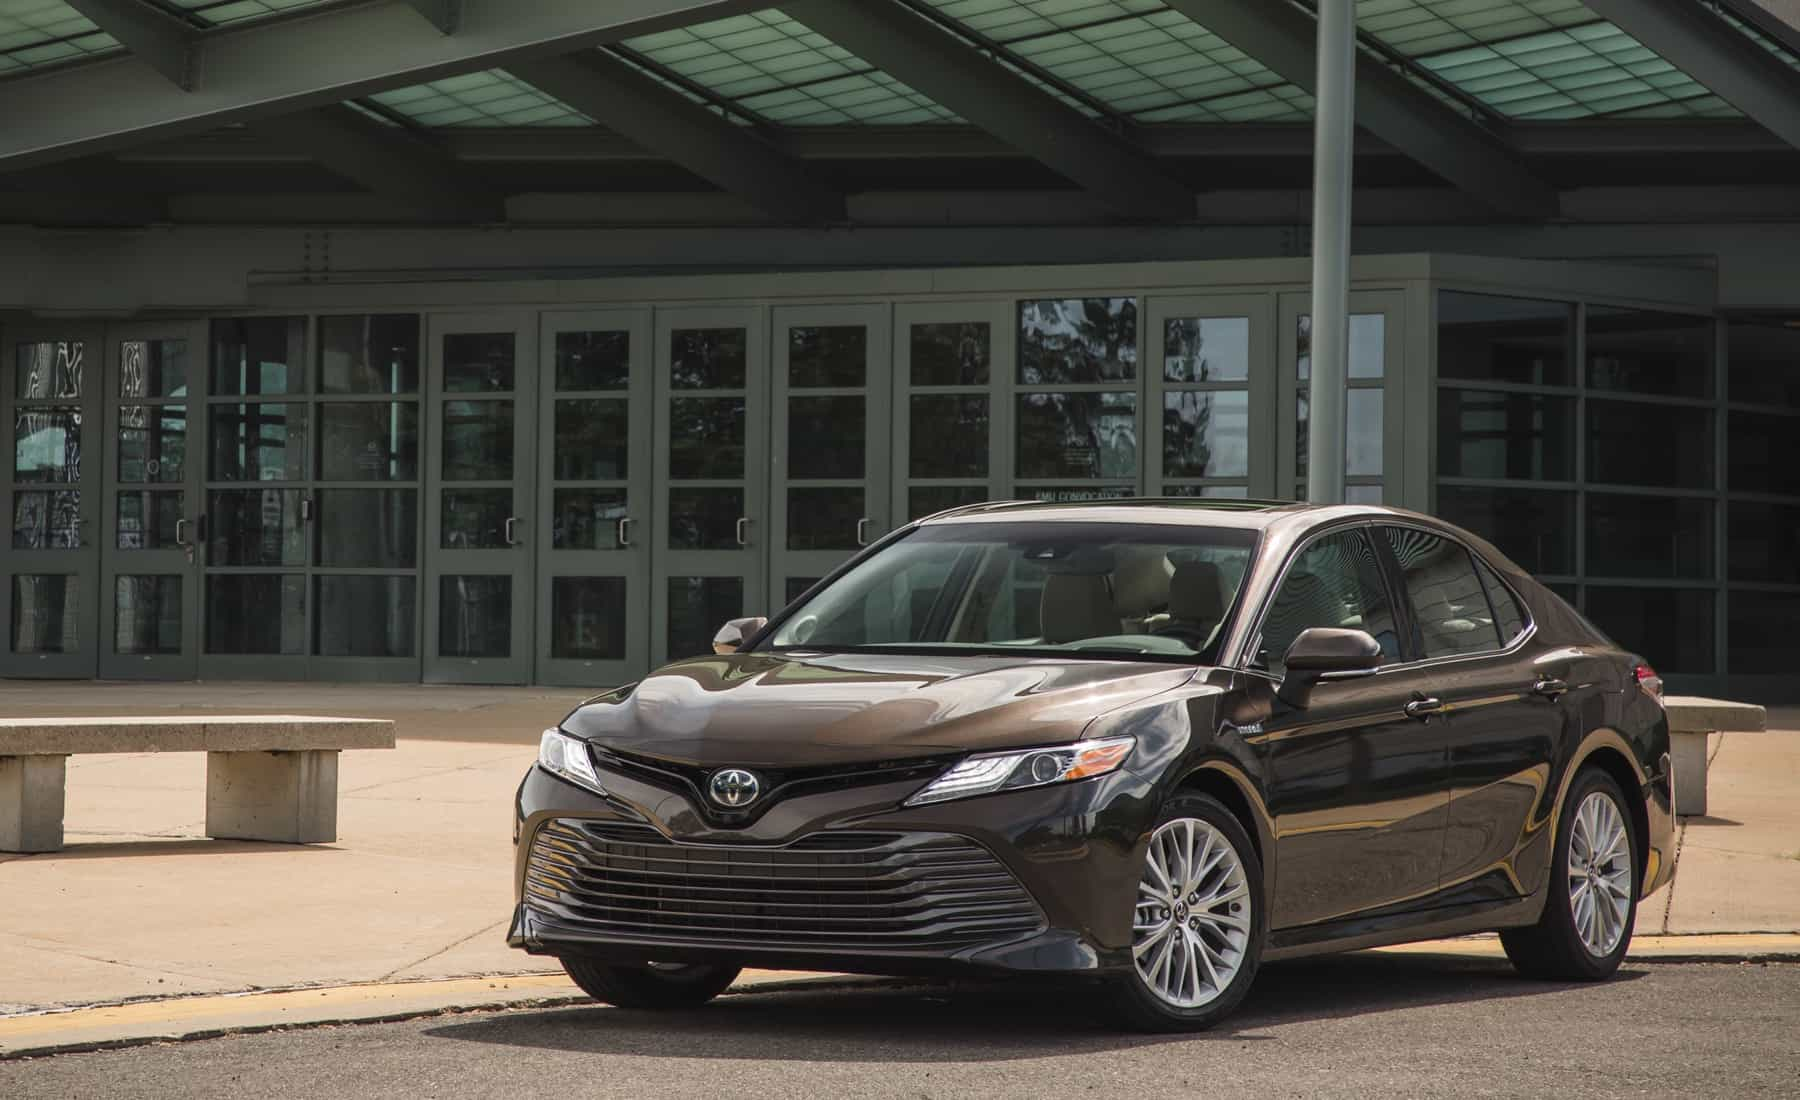 2018 Toyota Camry Hybrid XLE Exterior (Photo 2 of 41)